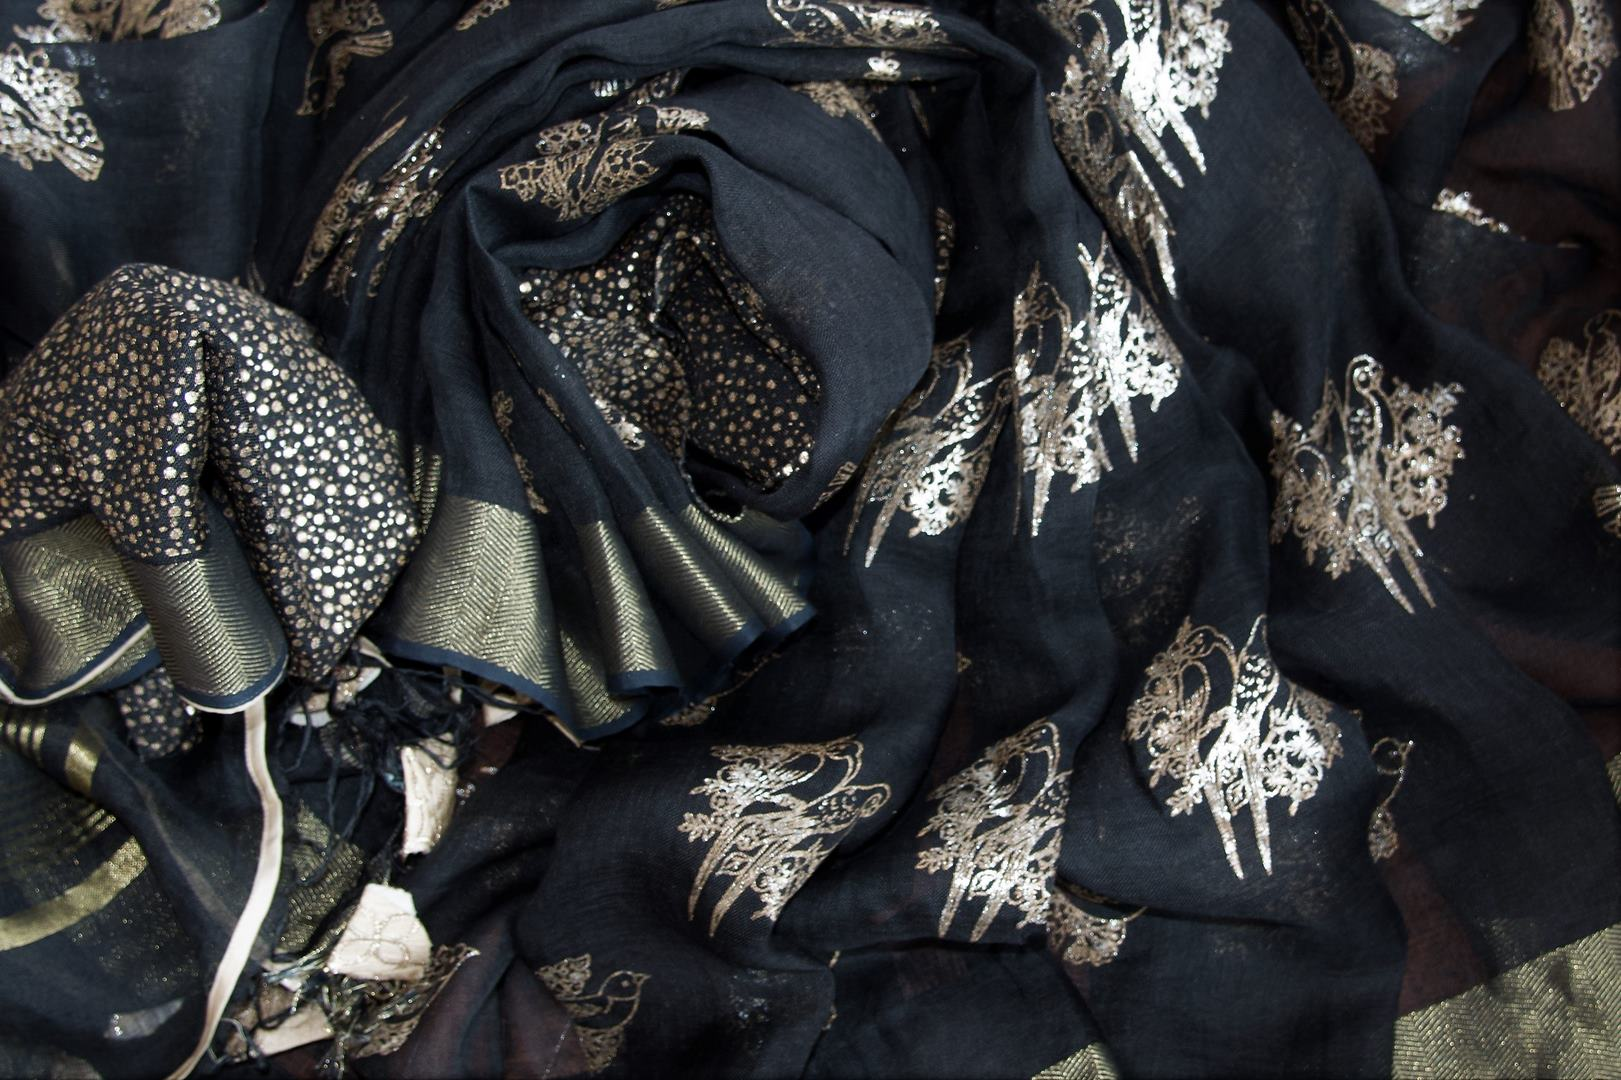 Shop black linen saree online in USA with zari border and bird nest motifs. Make your ethnic style even more stylish with an exclusive range on Indian handloom sarees from Pure Elegance Indian fashion store in USA. -details